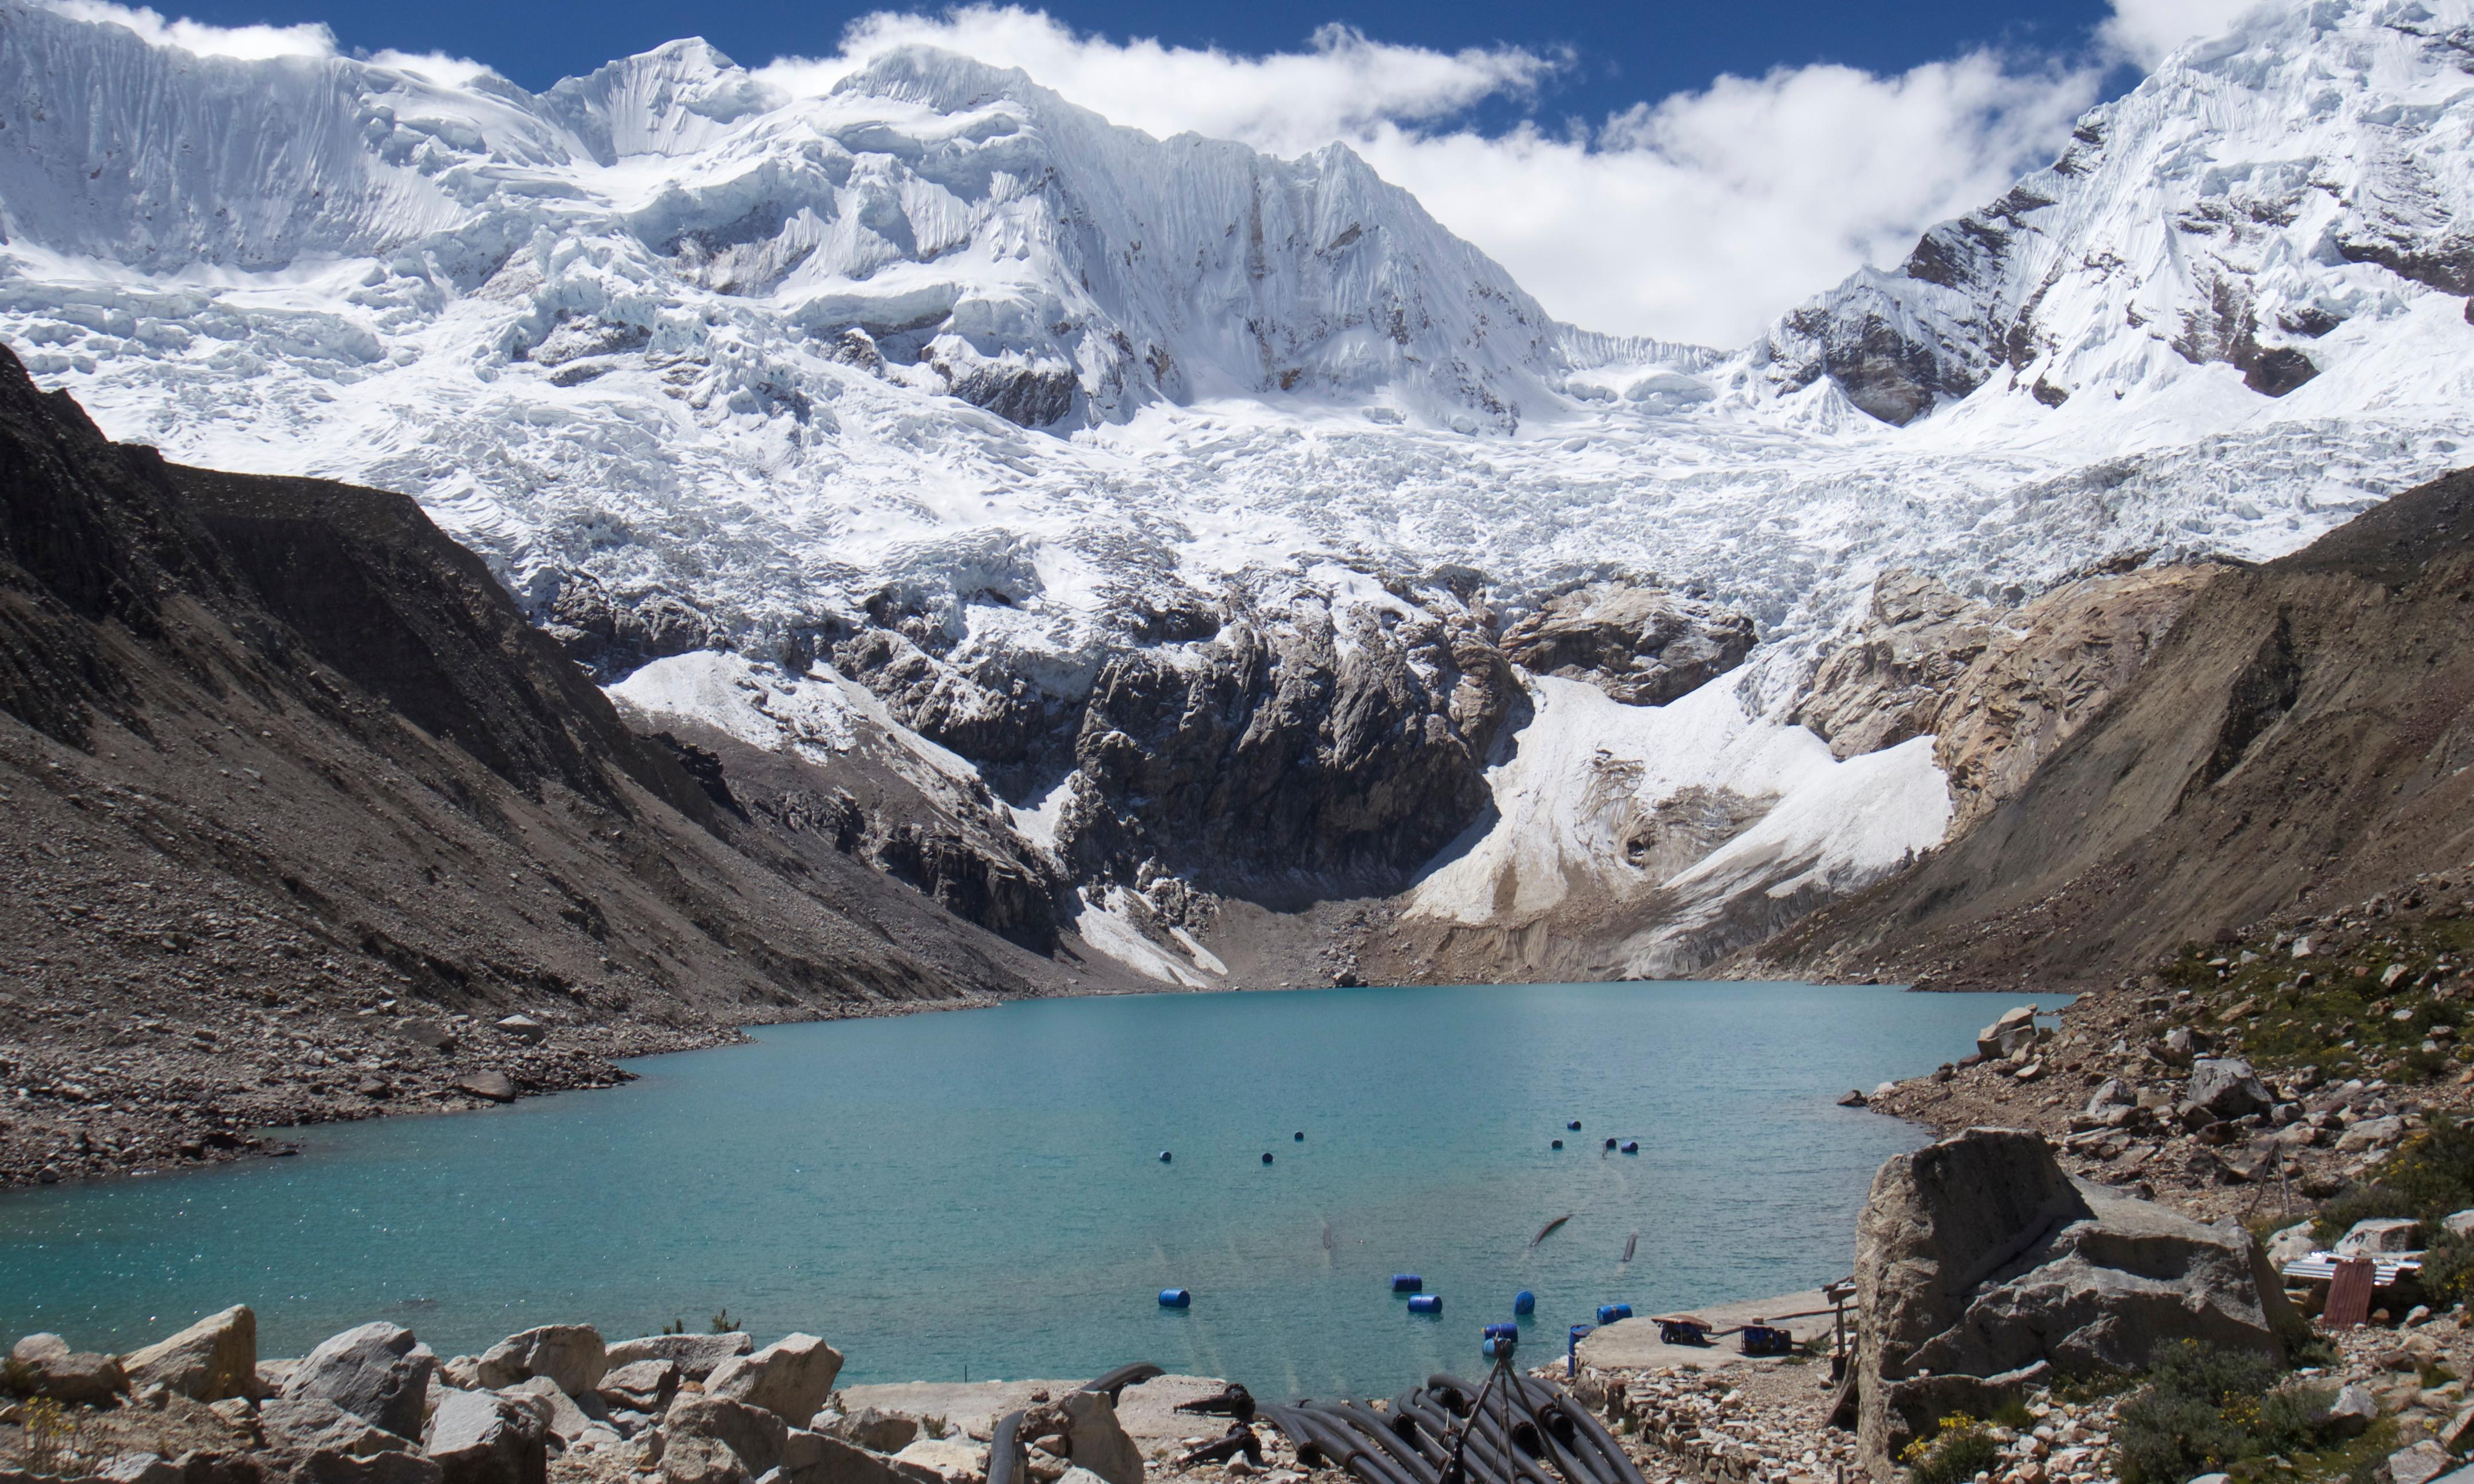 Climate change has turned Peru's glacial lake into a deadly flood timebomb